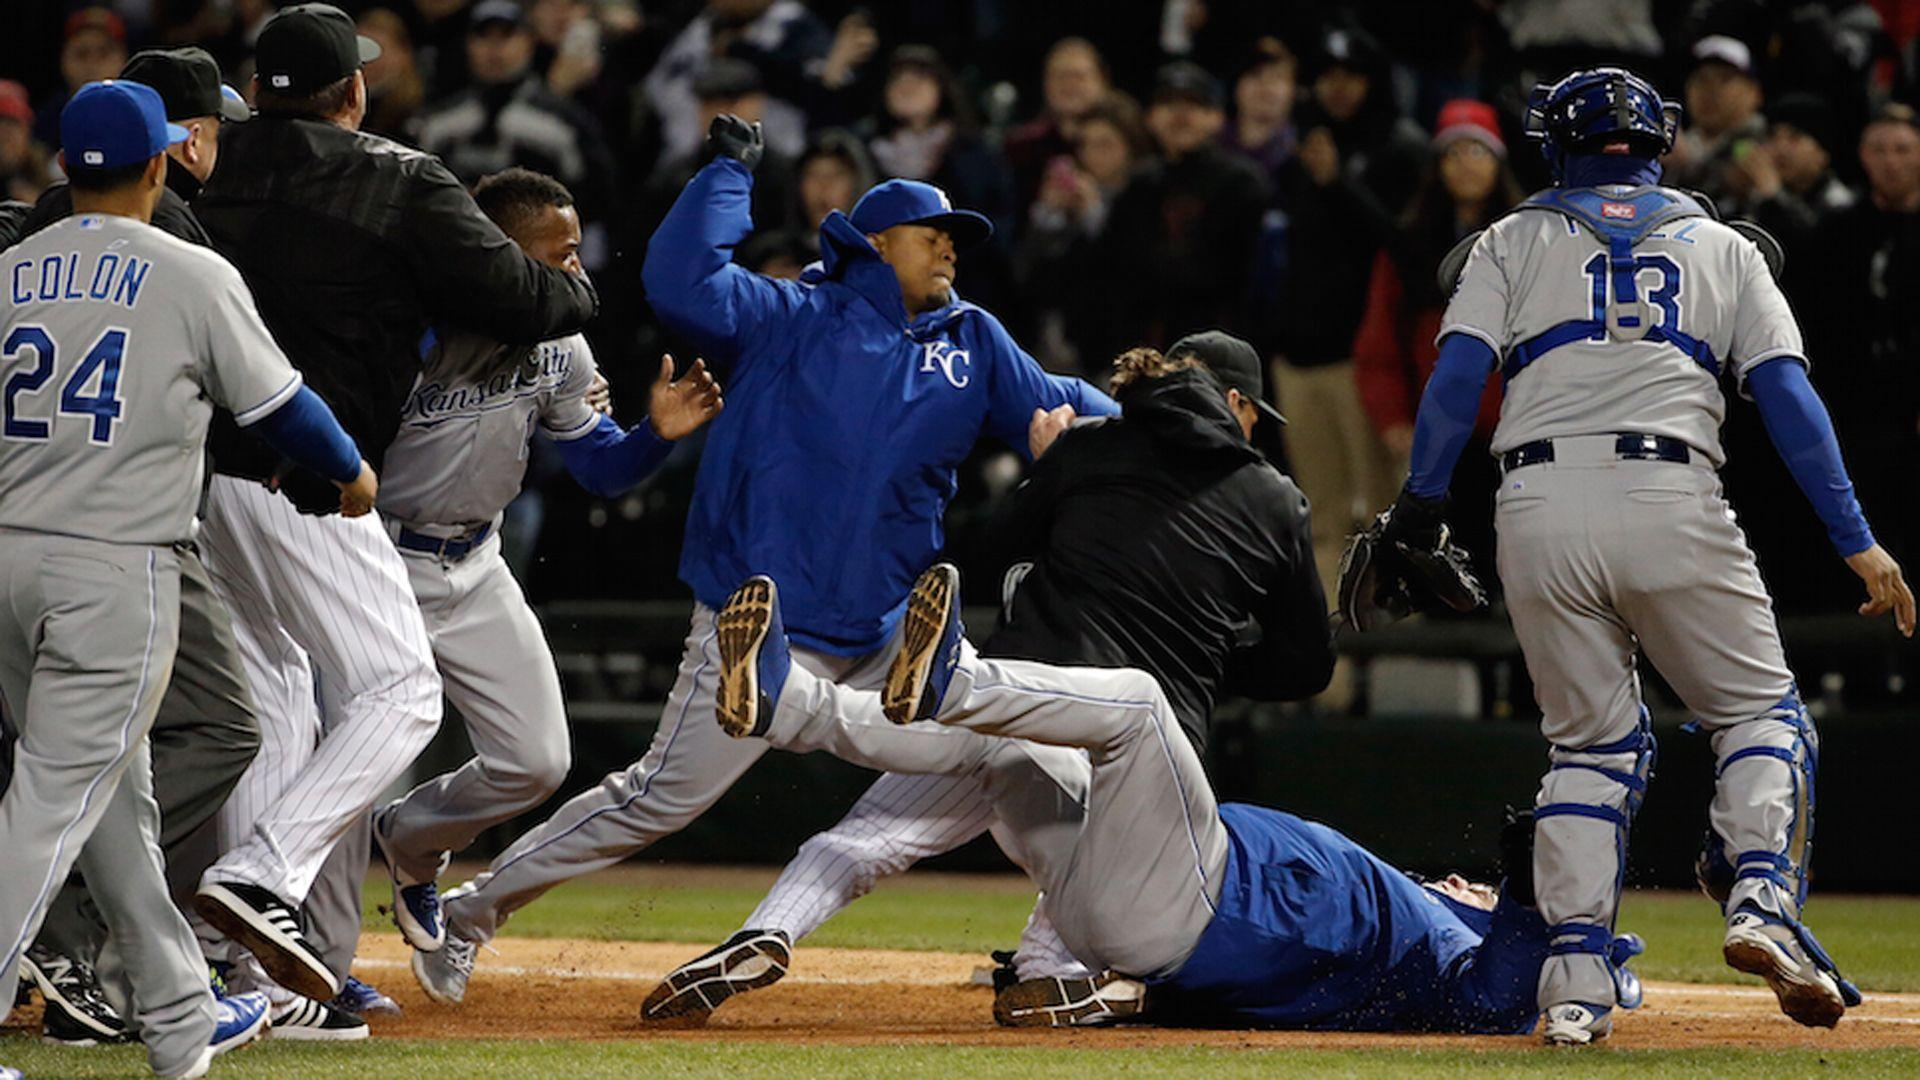 Yordano Ventura sparks another Royals brawl, this time with White ...